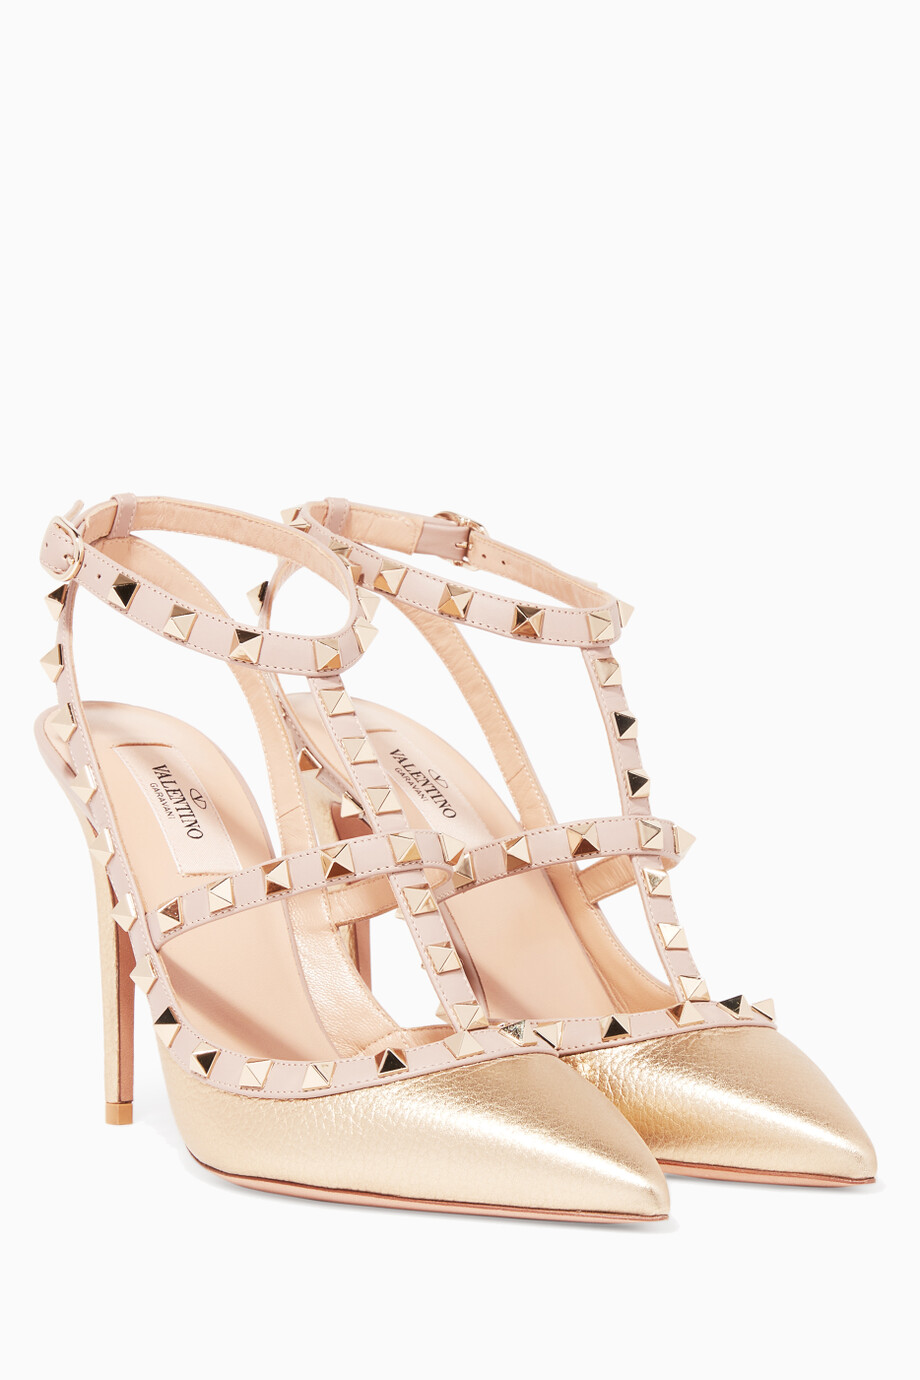 0c0c1fa0cc Shop Valentino Gold Metallic-Gold Single-Strap Rockstud Textured Pumps for  Women | Ounass